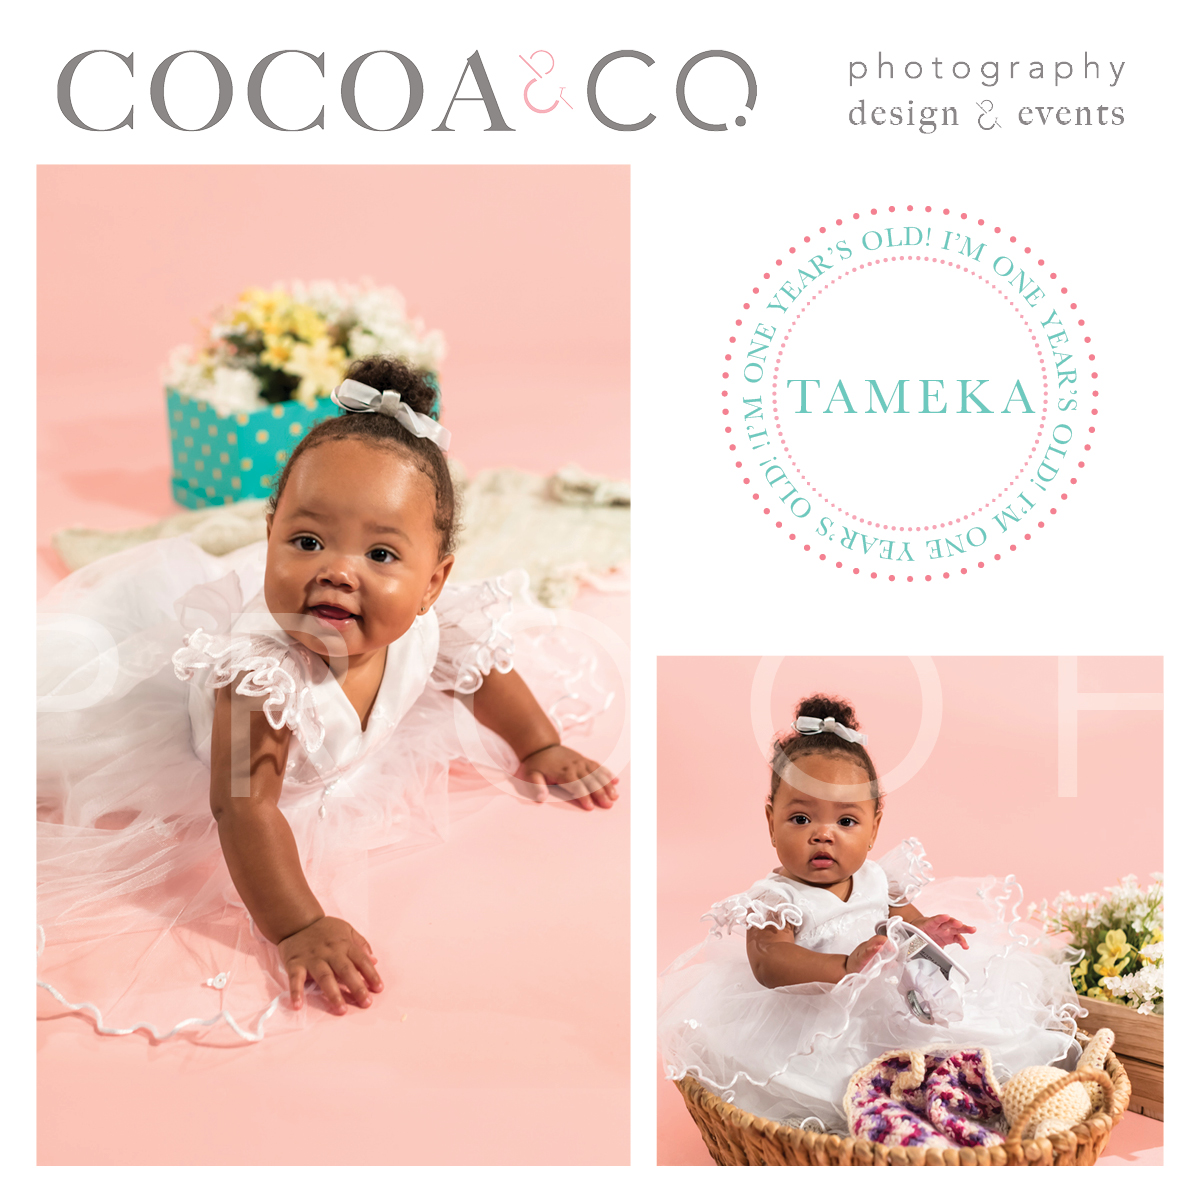 P.Tameka_SIGNATURE CARD_CC_8x8_FINAL.jpg